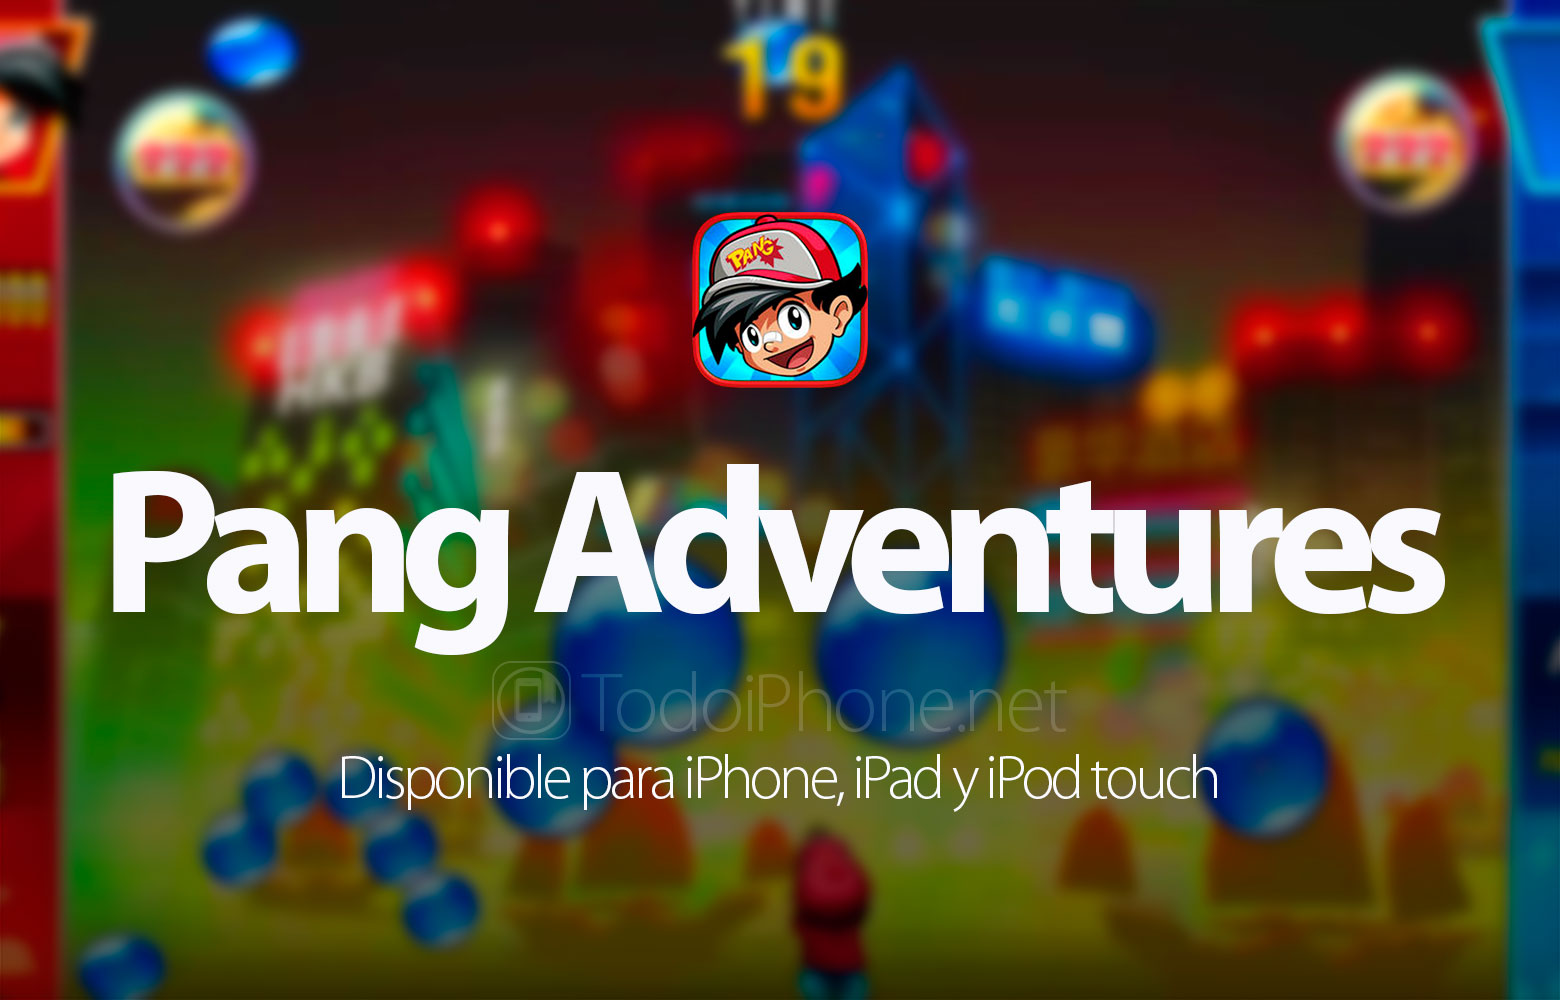 pang-adventures-iphone-ipad